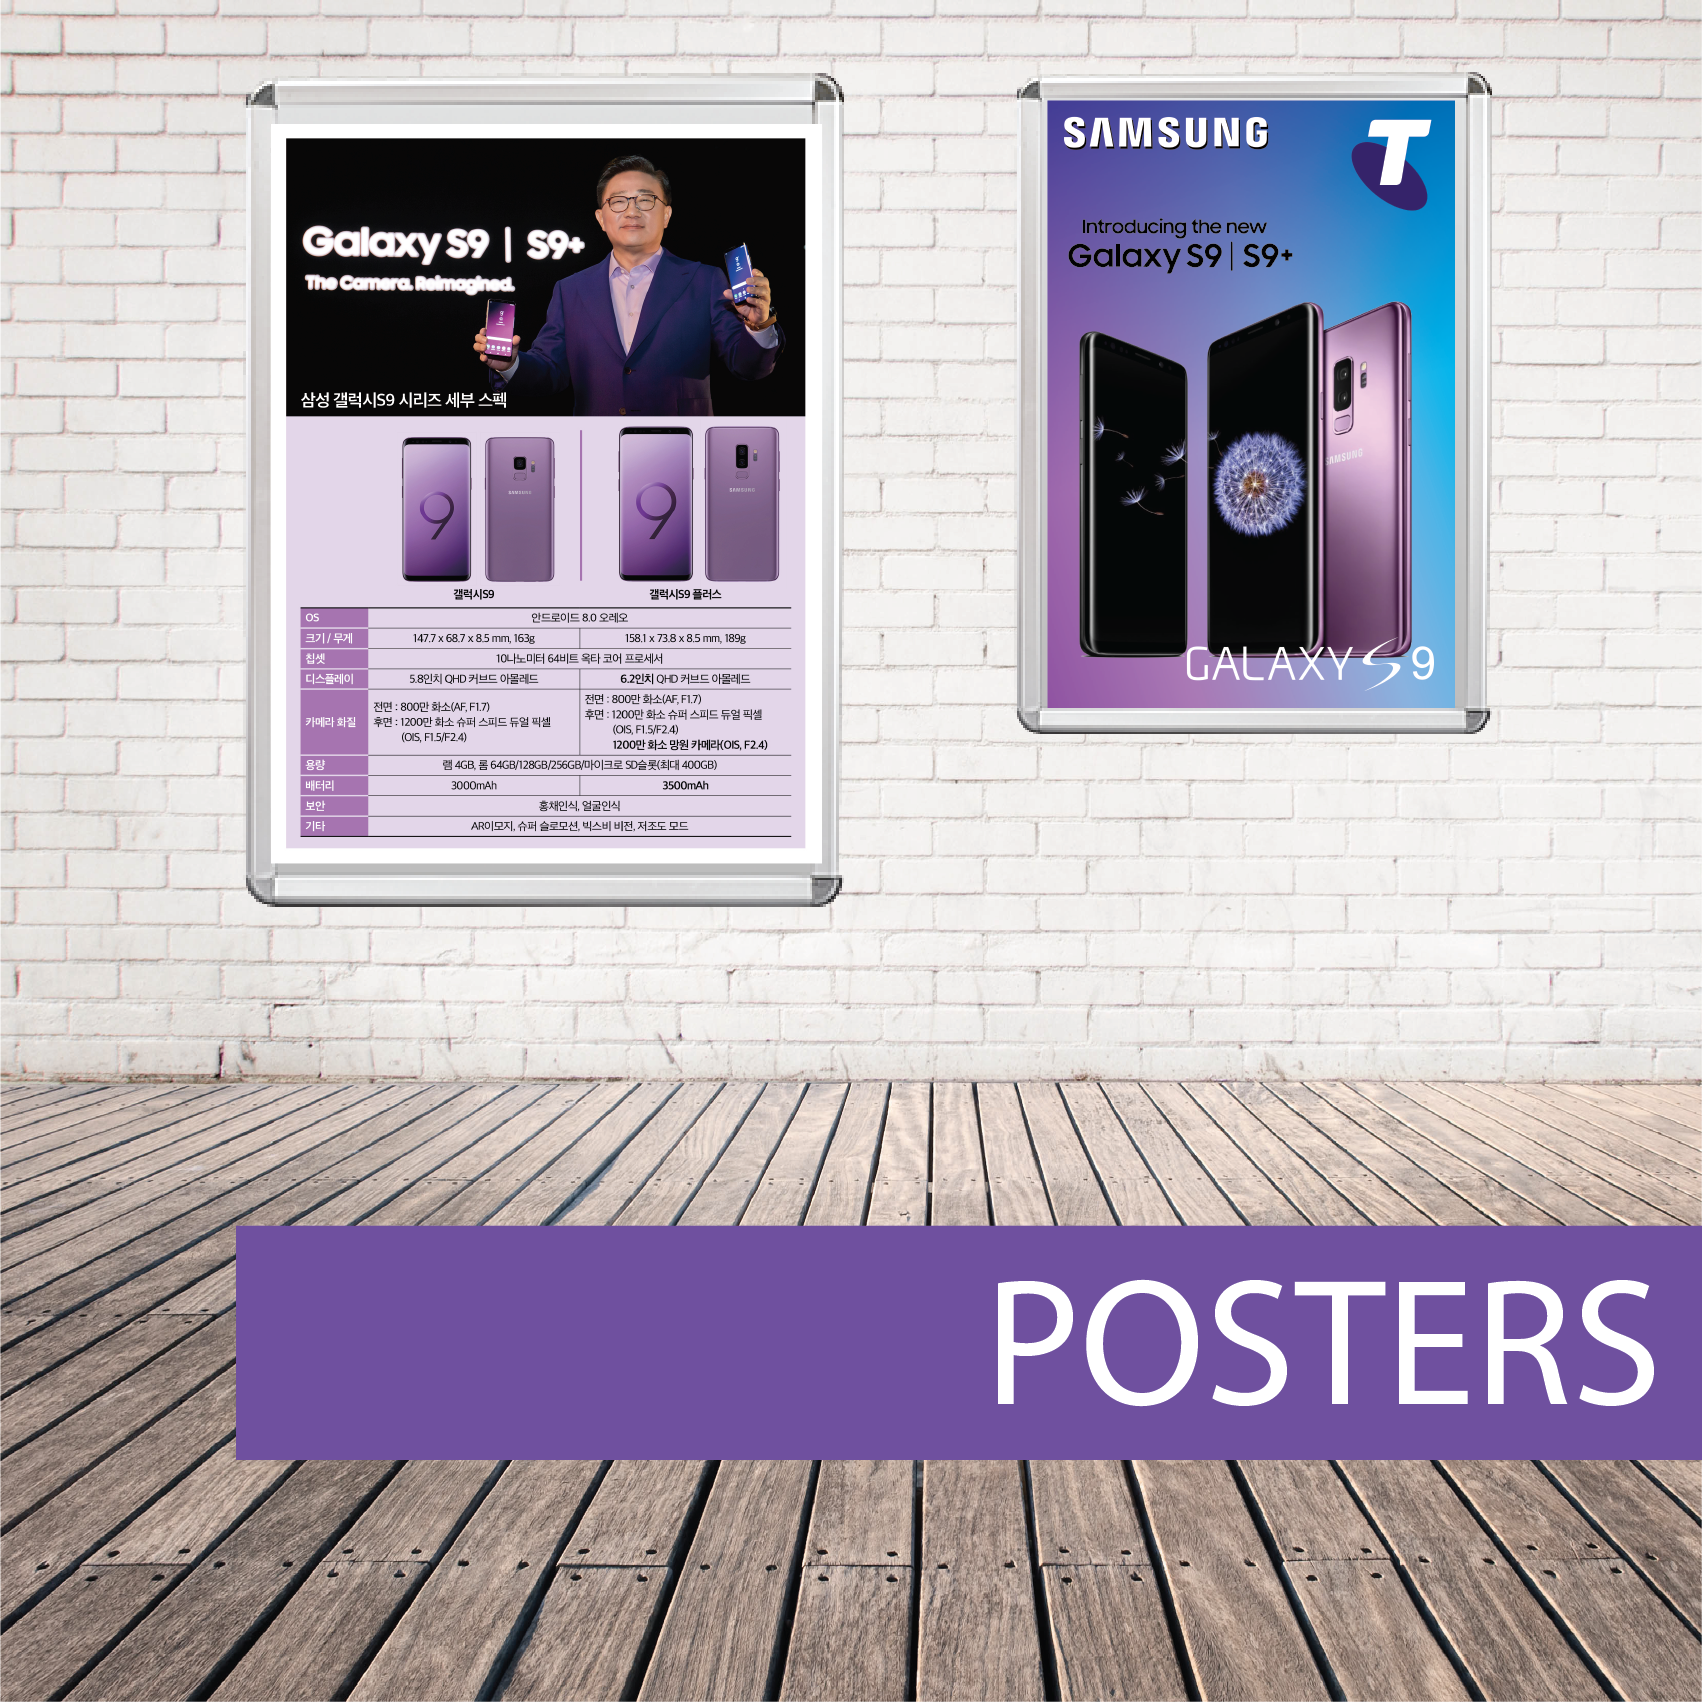 Wall Posters Telstra Nokia